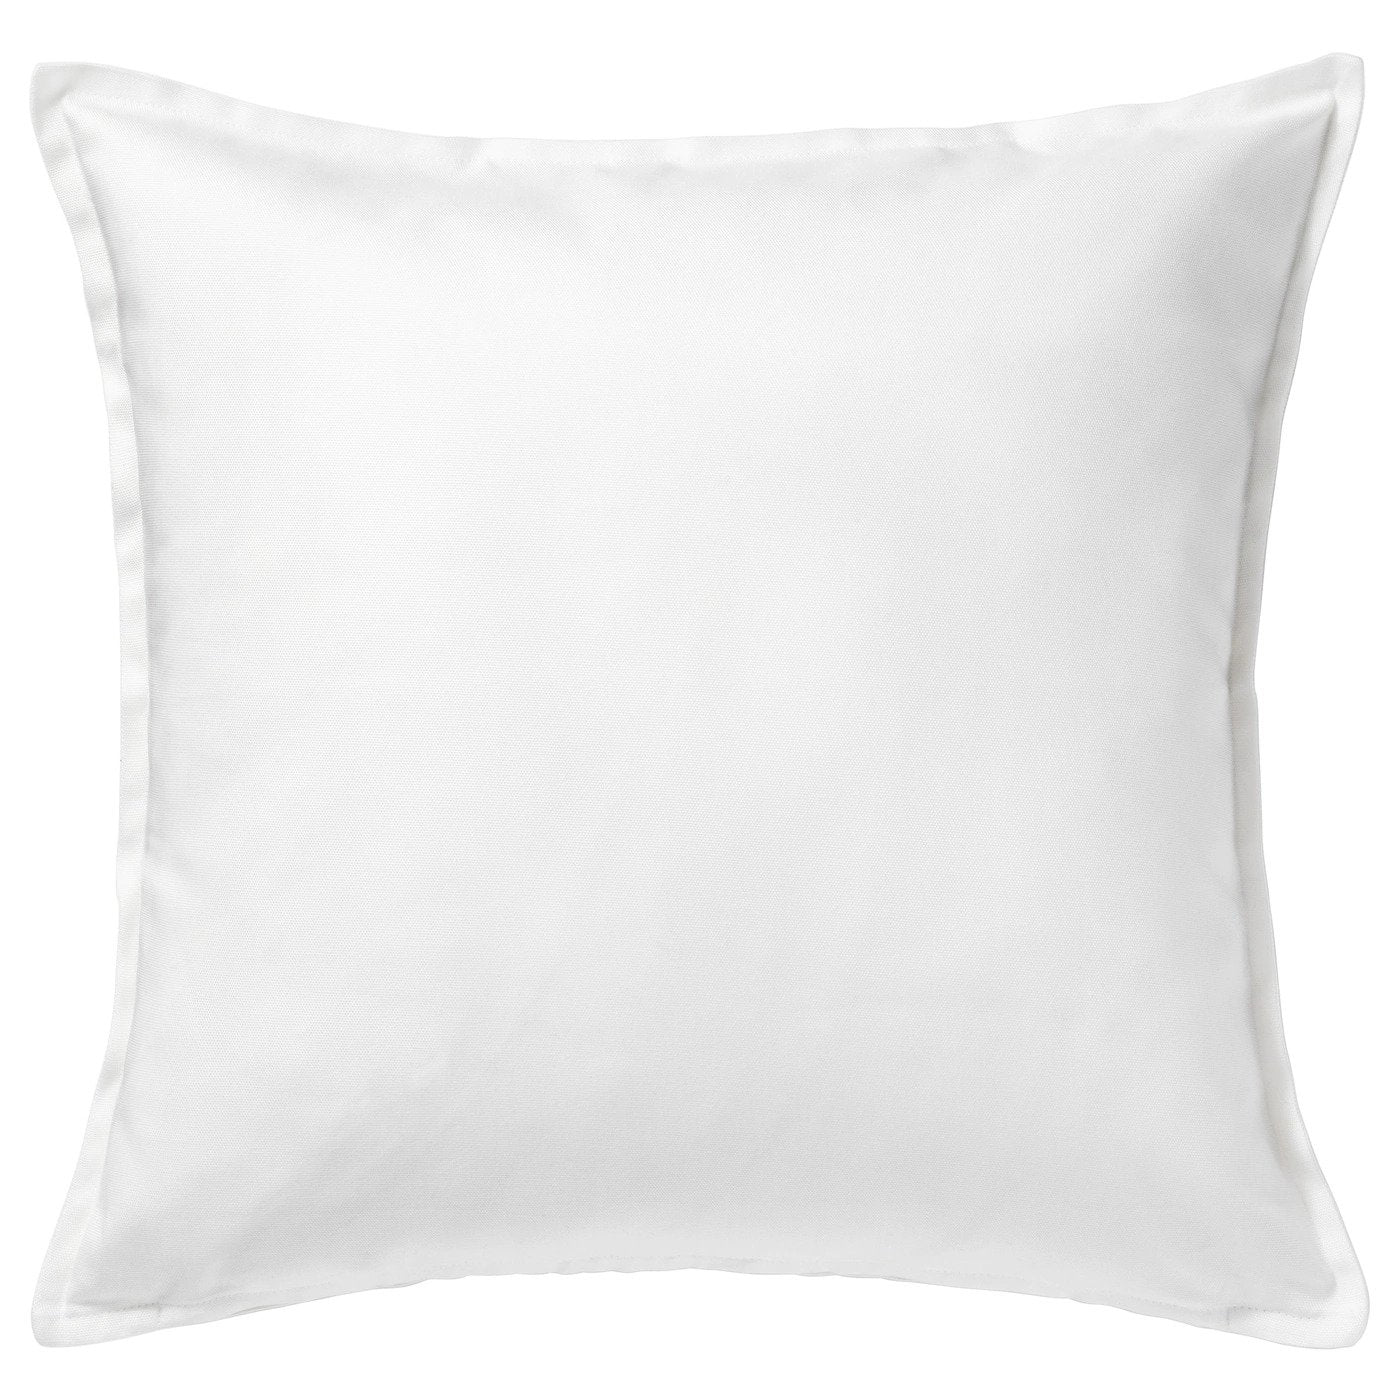 Personalised Custom Pillows